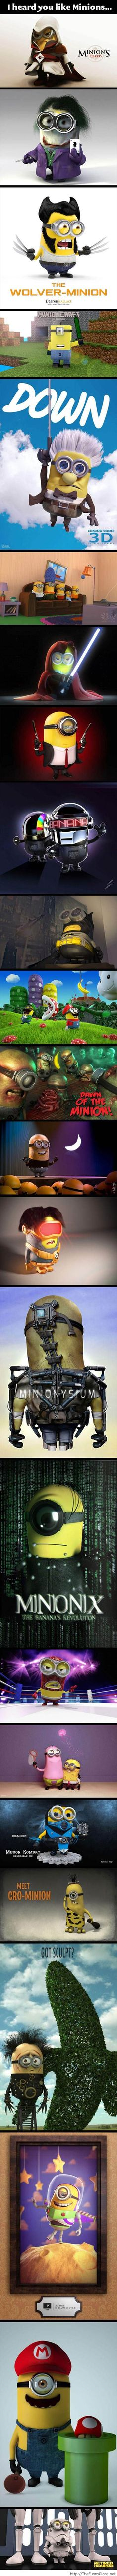 Funny-minions-pictures-best-of.jpg 540×11,895 pixels